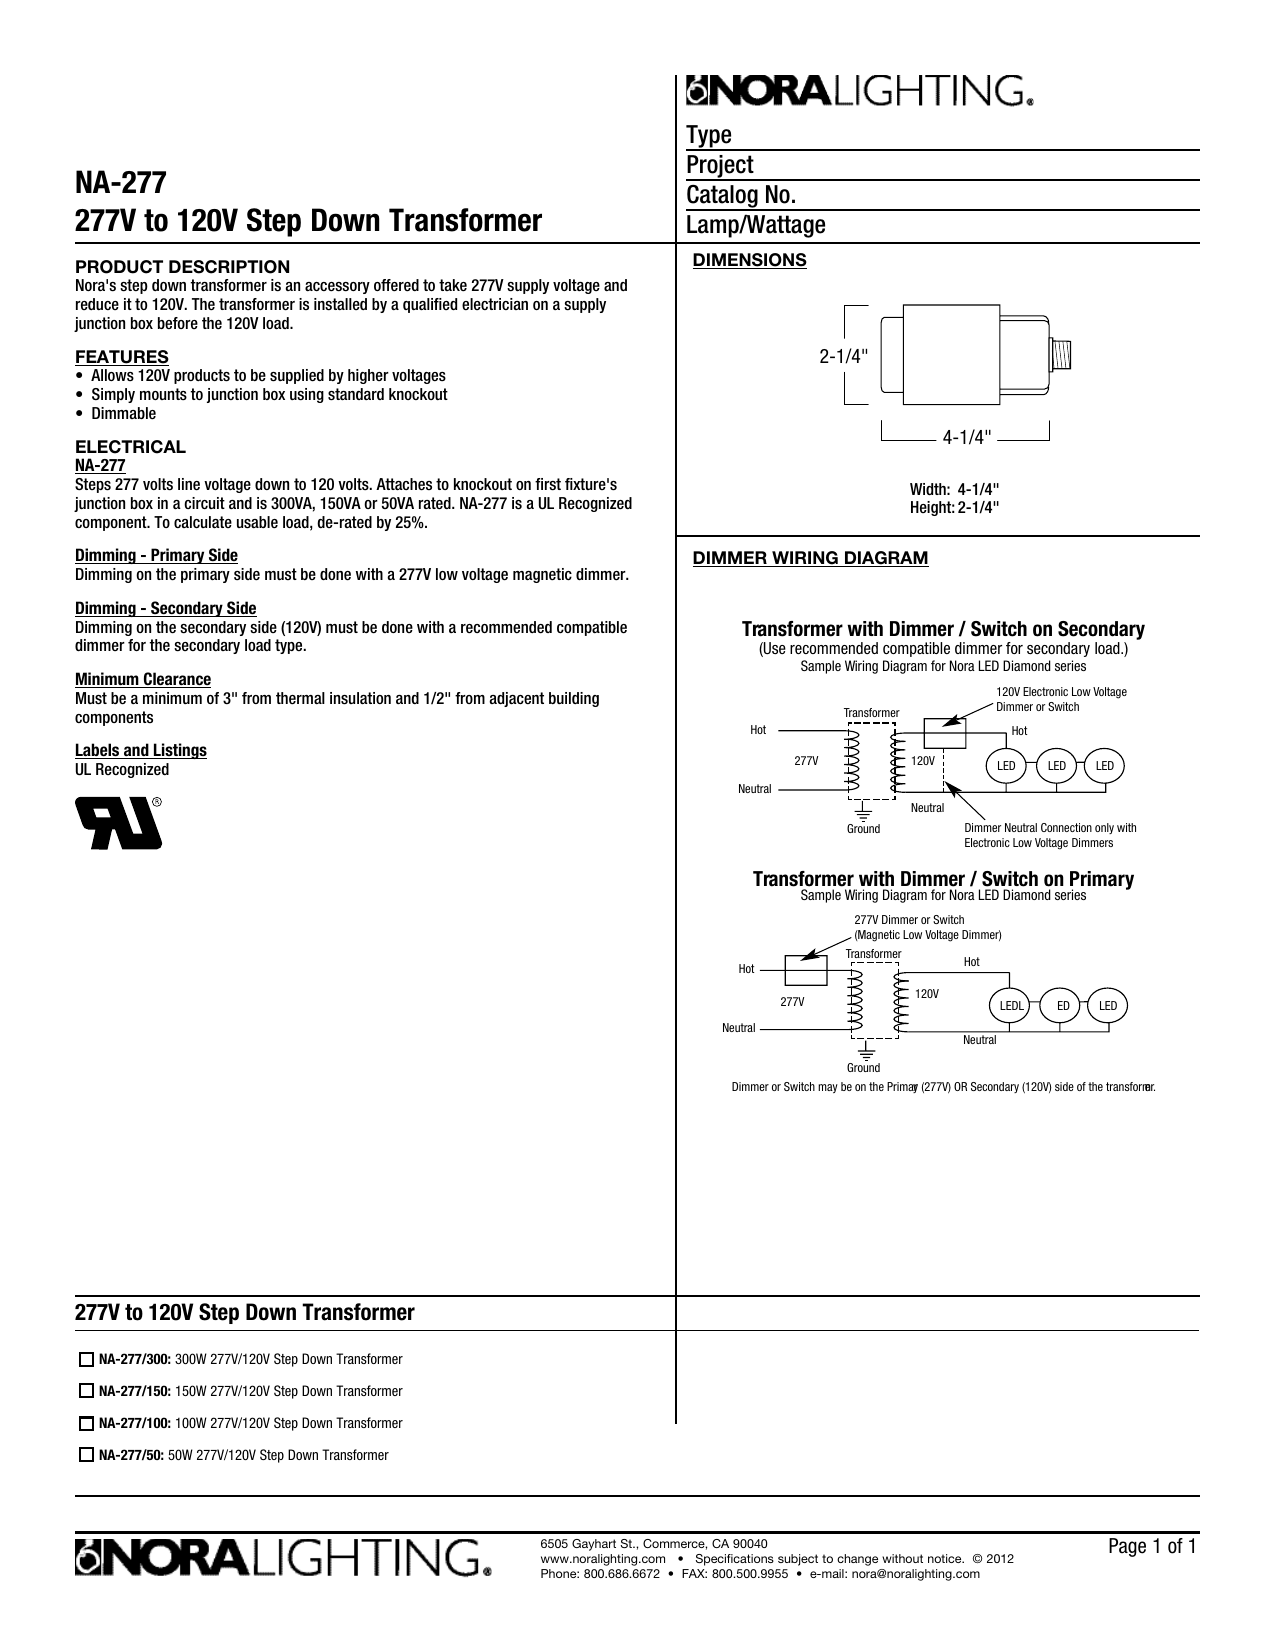 Electrical Wiring Diagrams 480v 277v Power Light On Schematic Dimmer Automotive Diagram U2022